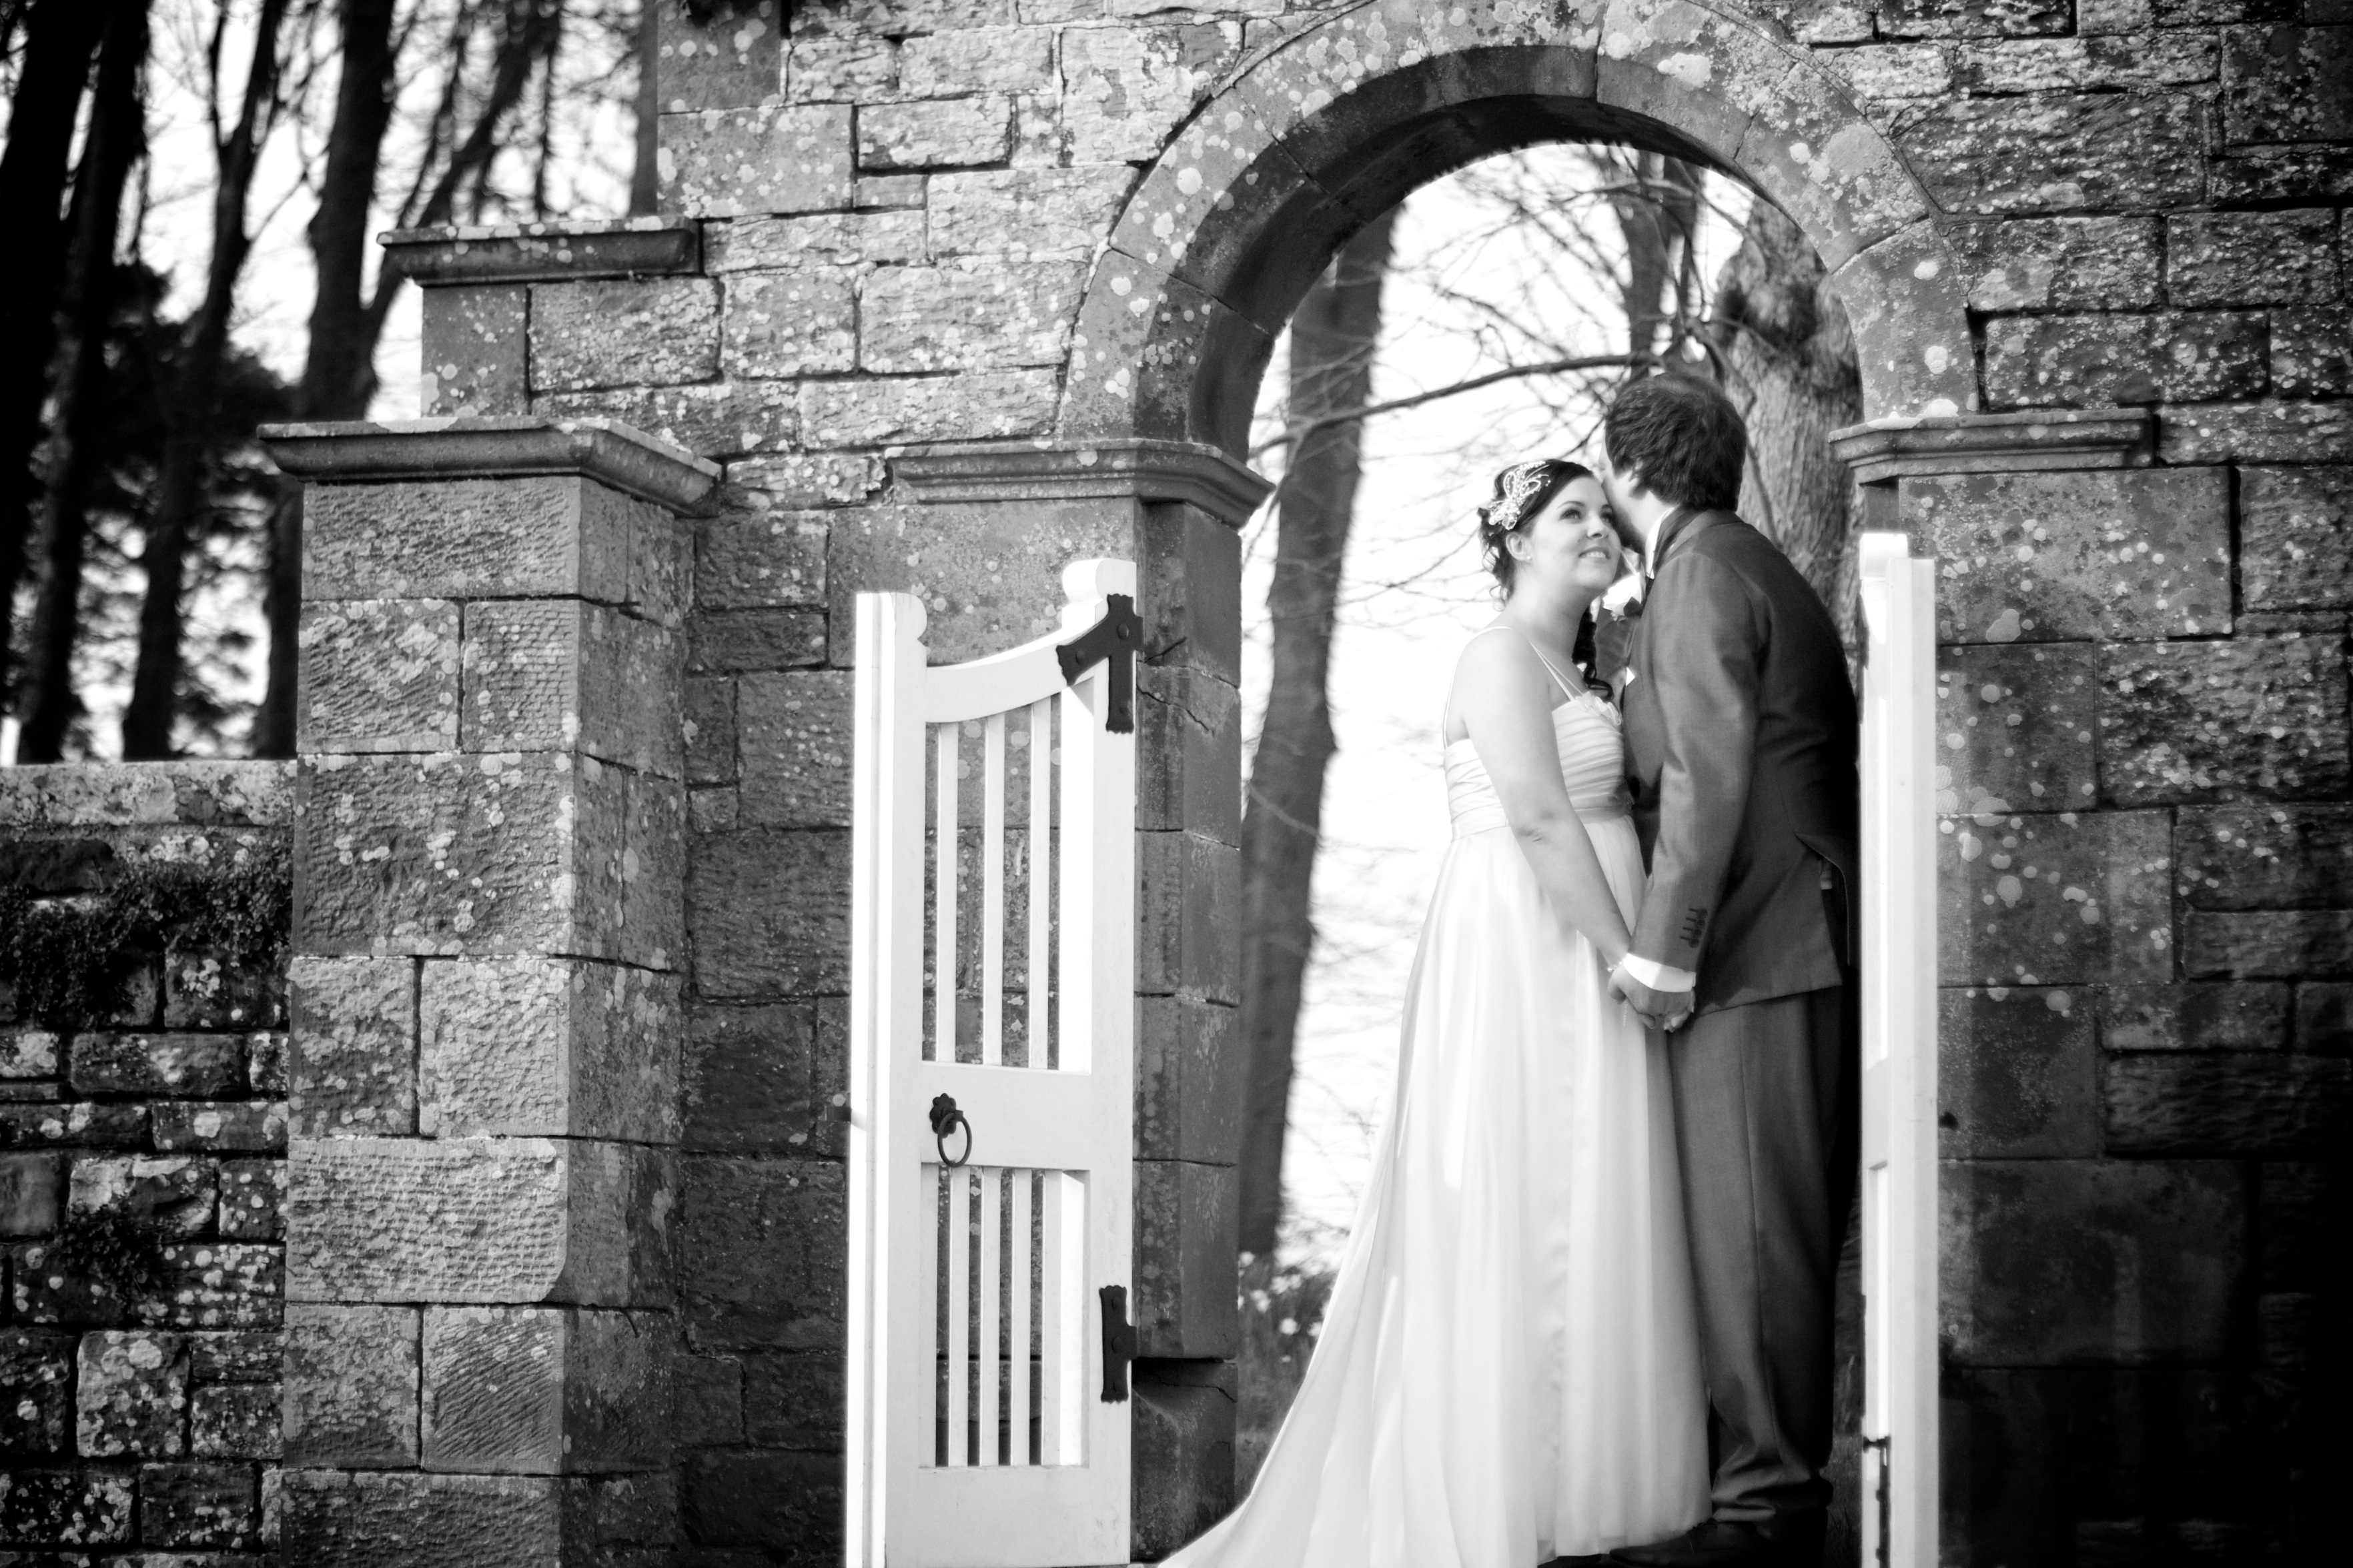 Cumbria Embracing In A Gateway The Gardens Of Dalston Hall Laughing Bride And Groom Wedding Photography